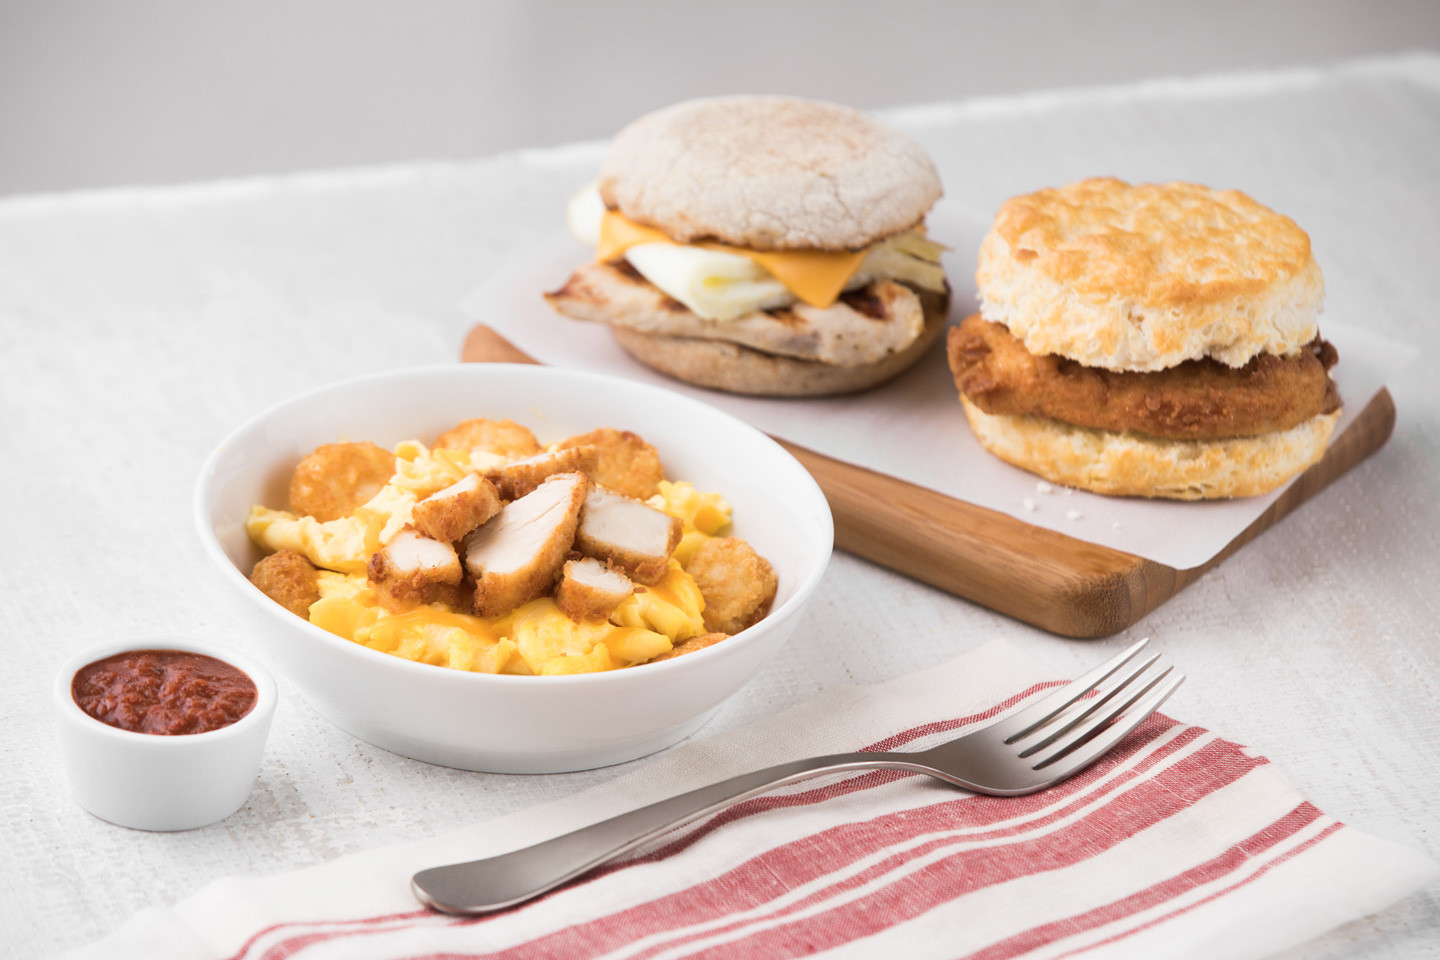 Healthy Chick Fil A Breakfast  Free breakfast for Chick fil A mobile app users